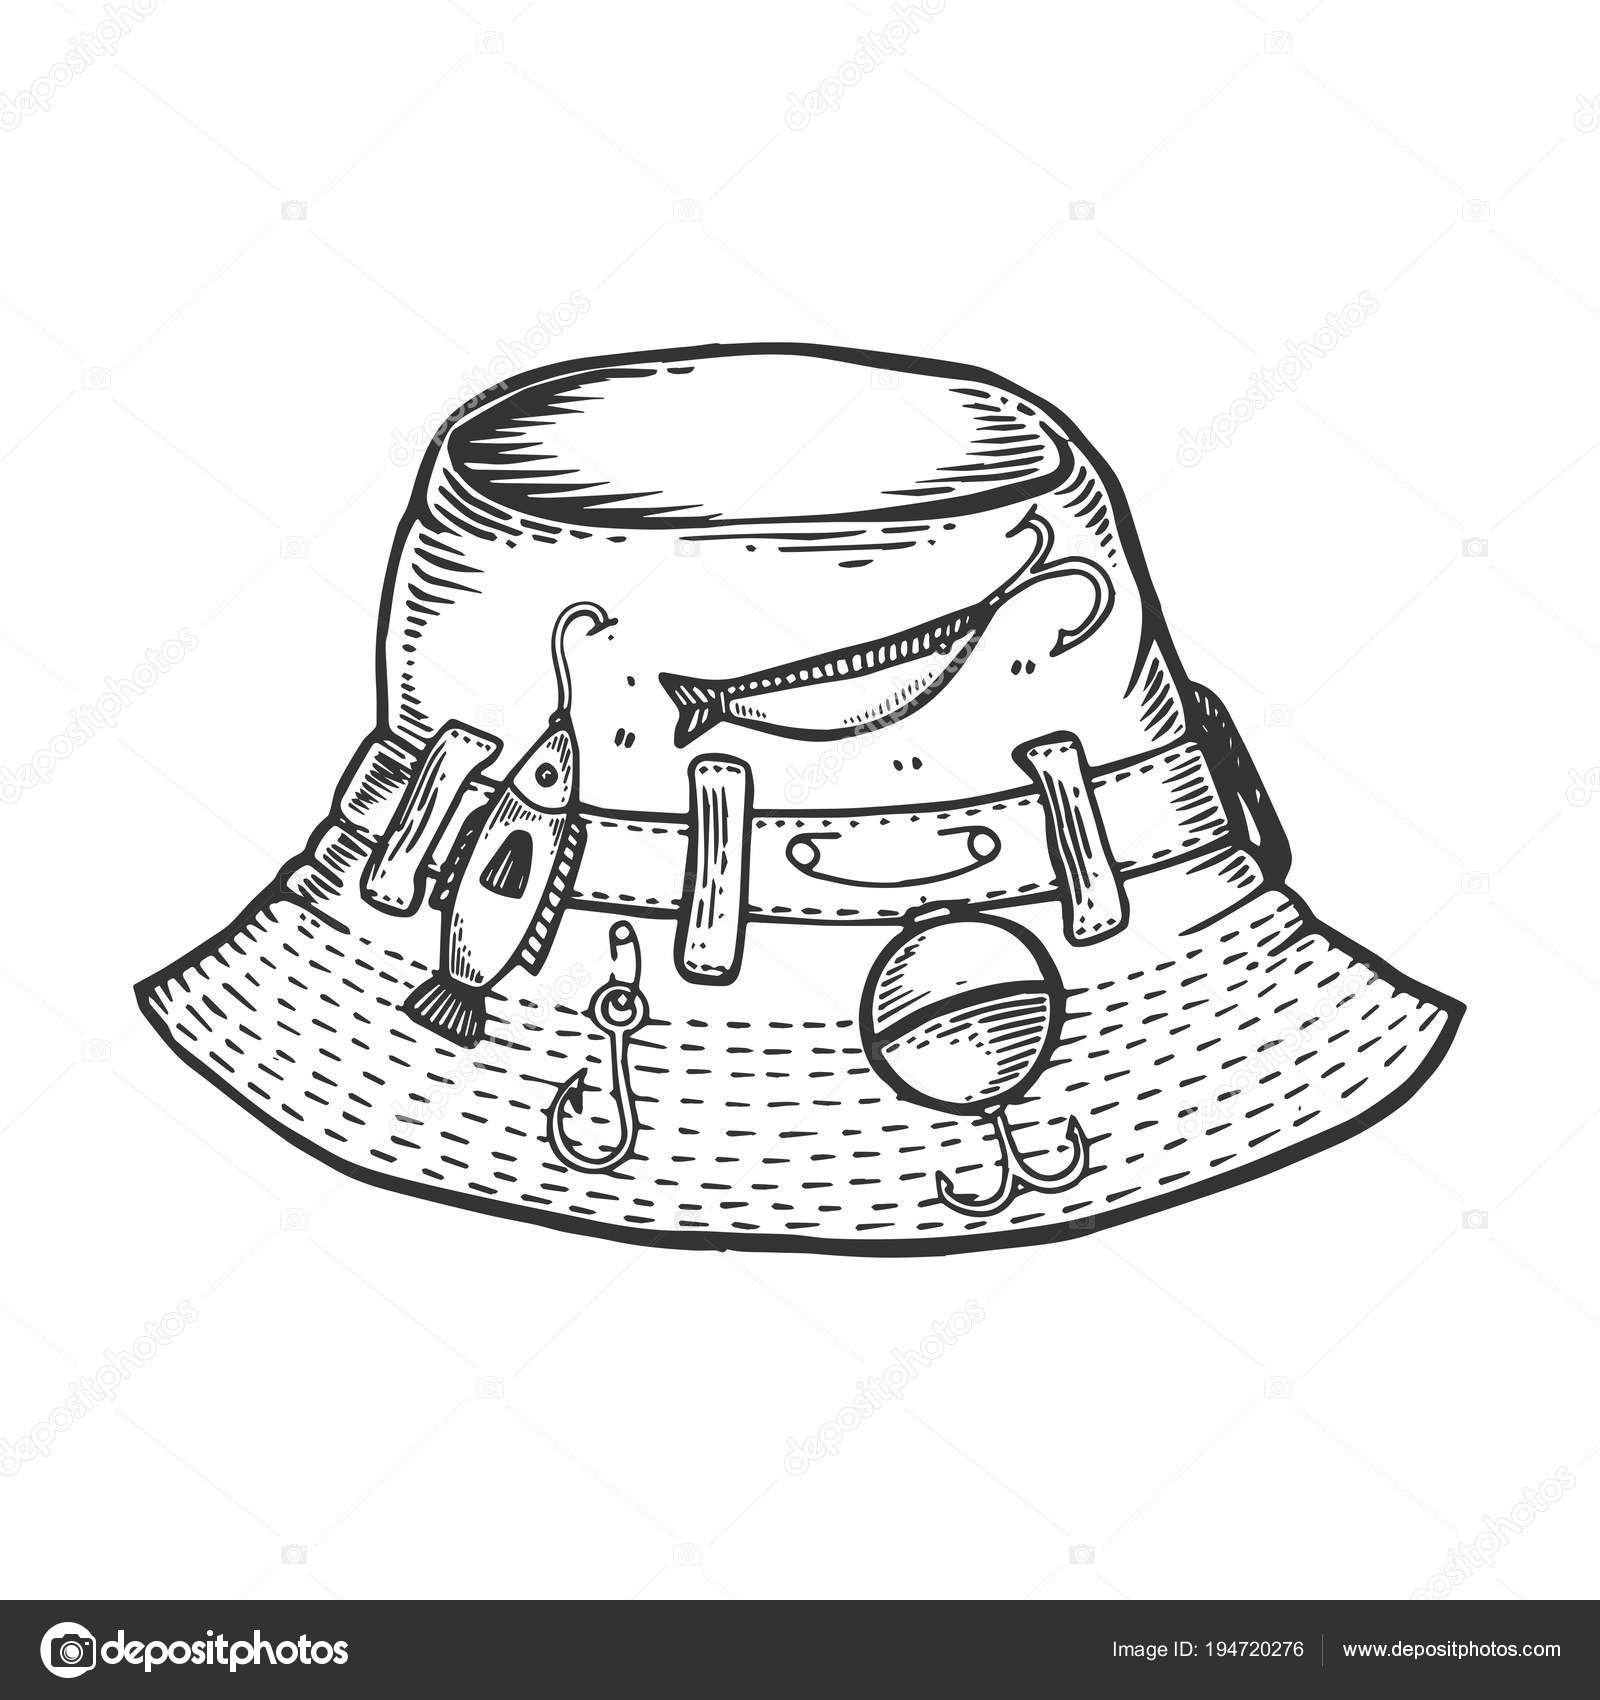 aef695029e2 Fisherman hat engraving vector illustration. Scratch board style imitation.  Black and white hand drawn image.